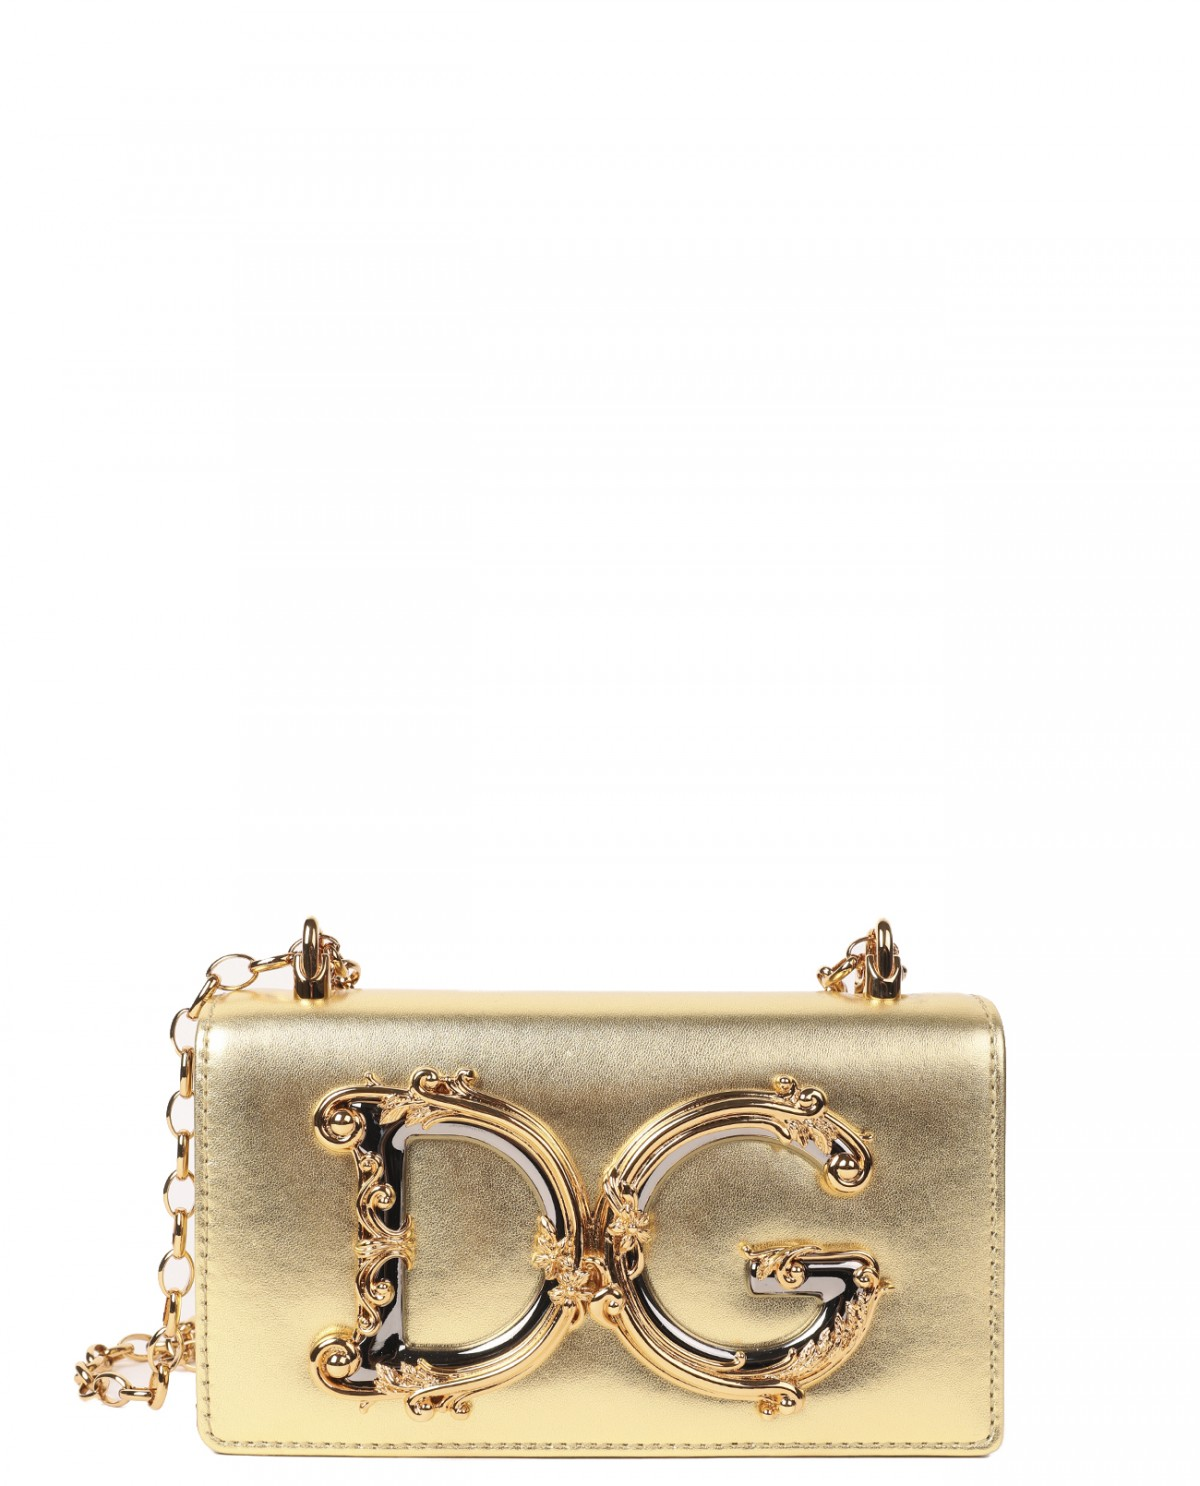 Dolce & Gabbana gold DG Girls phone bag